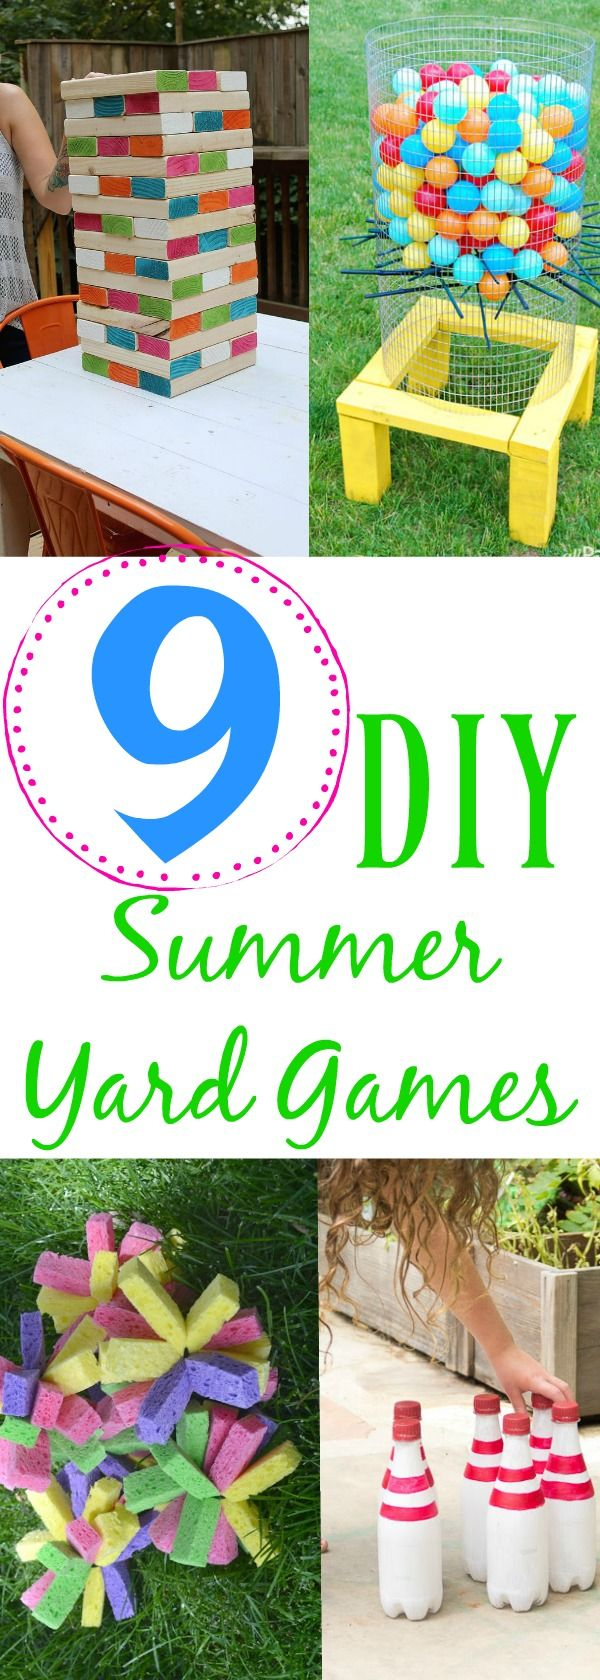 9 DIY Summer Yard Games | Building Our Story. 9 Diy Summer Yard Games, Make  Your Own Outdoor ...